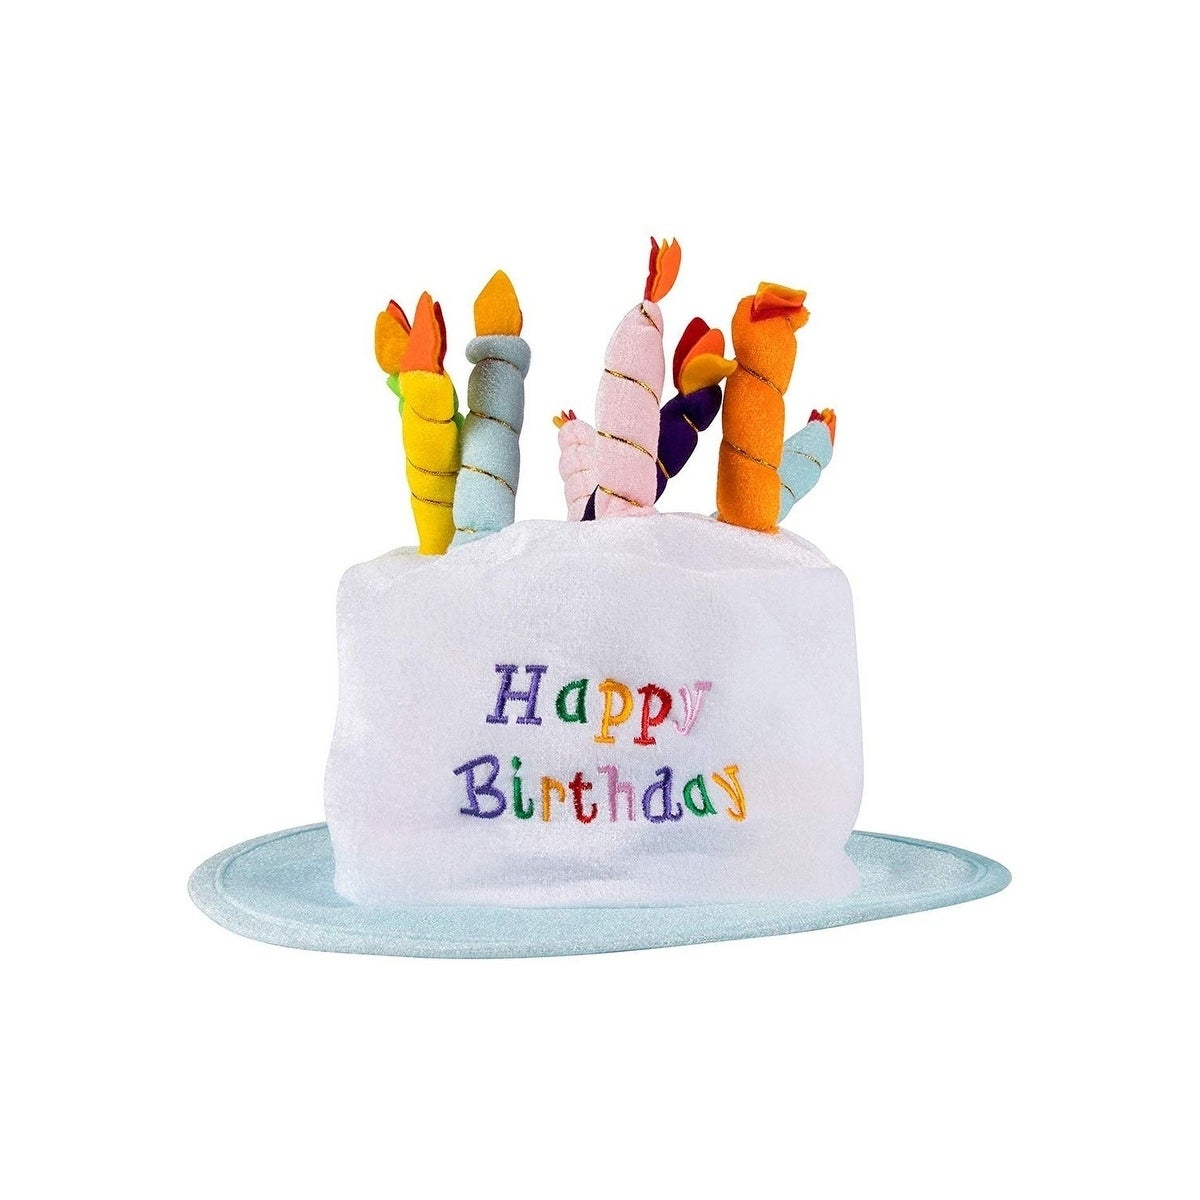 Pleasant Shop Plush Happy Birthday Cake Party Hats Top Hat With Candles Personalised Birthday Cards Veneteletsinfo